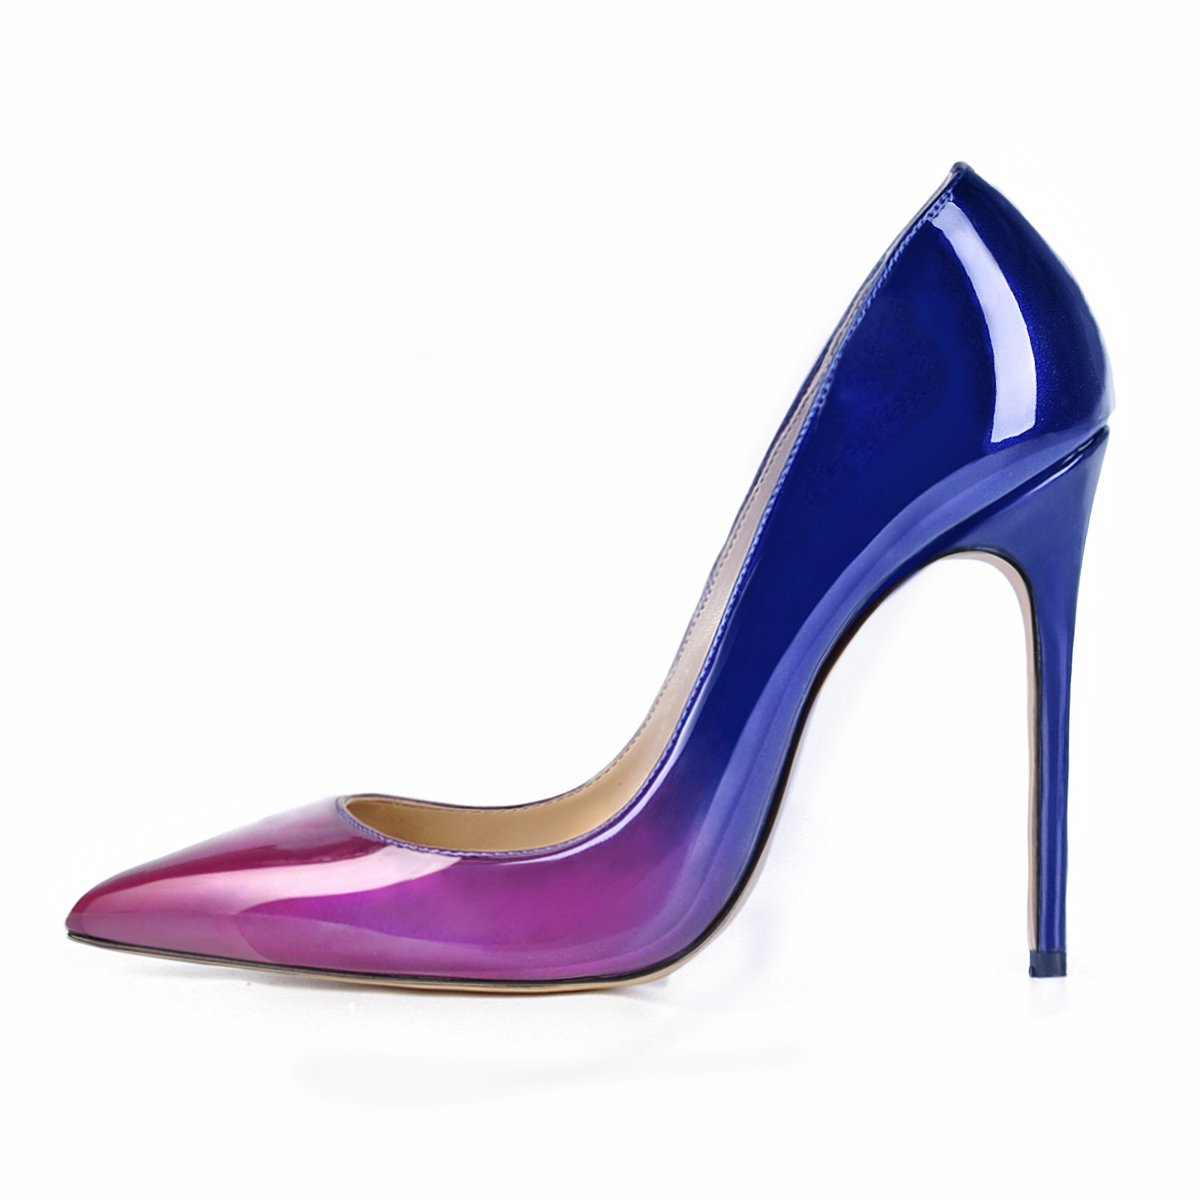 UMEXI Women's Peep Toe Chic Purple and Pumps Blue Multi Slip-on Stilettos High Heel Pumps and B06XXWFC65 Mary Jane a9dab6